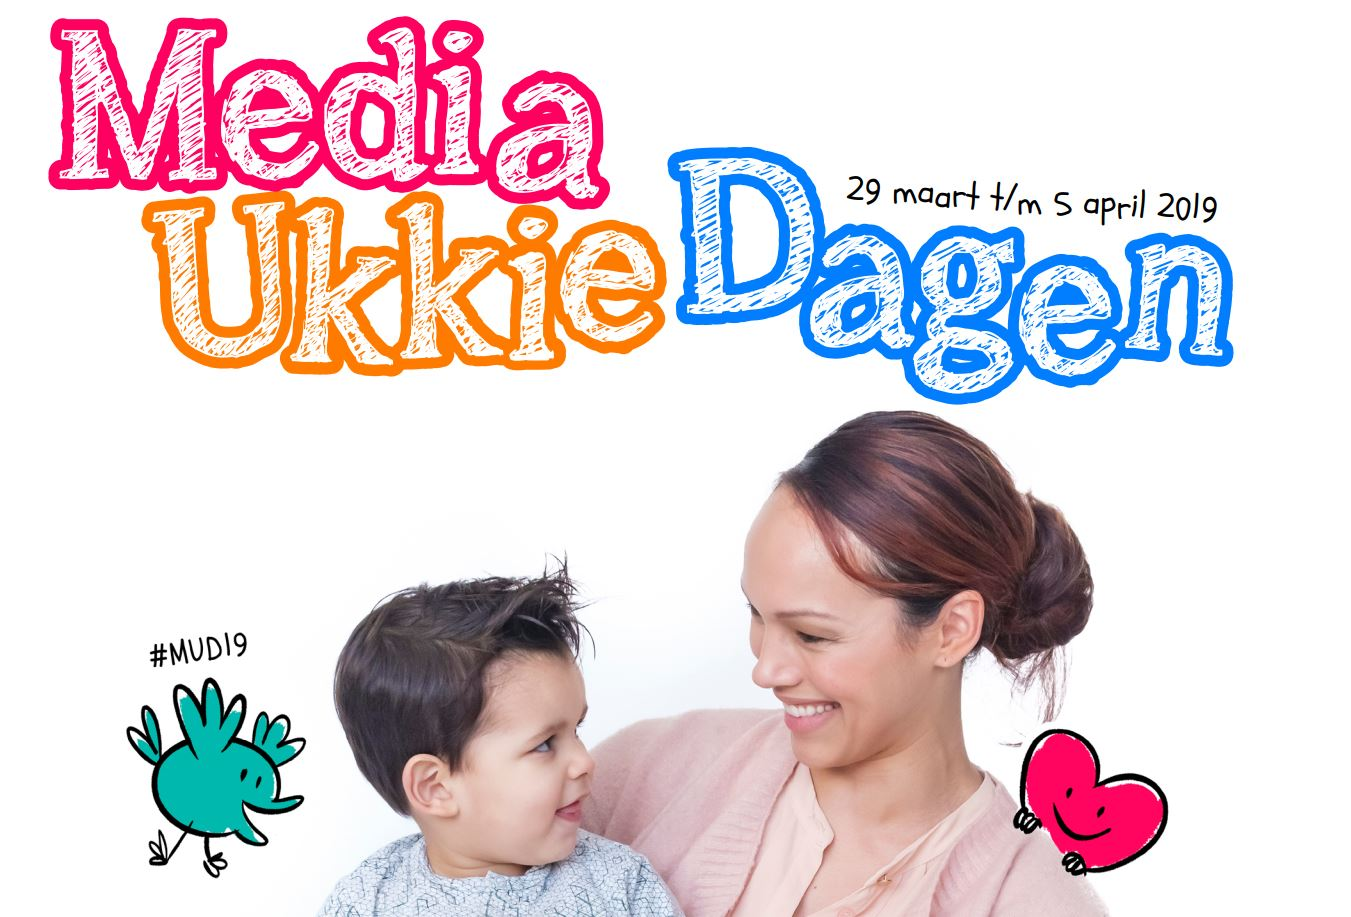 Media Ukkie Dagen 2019 - Bureau Jeugd & Media